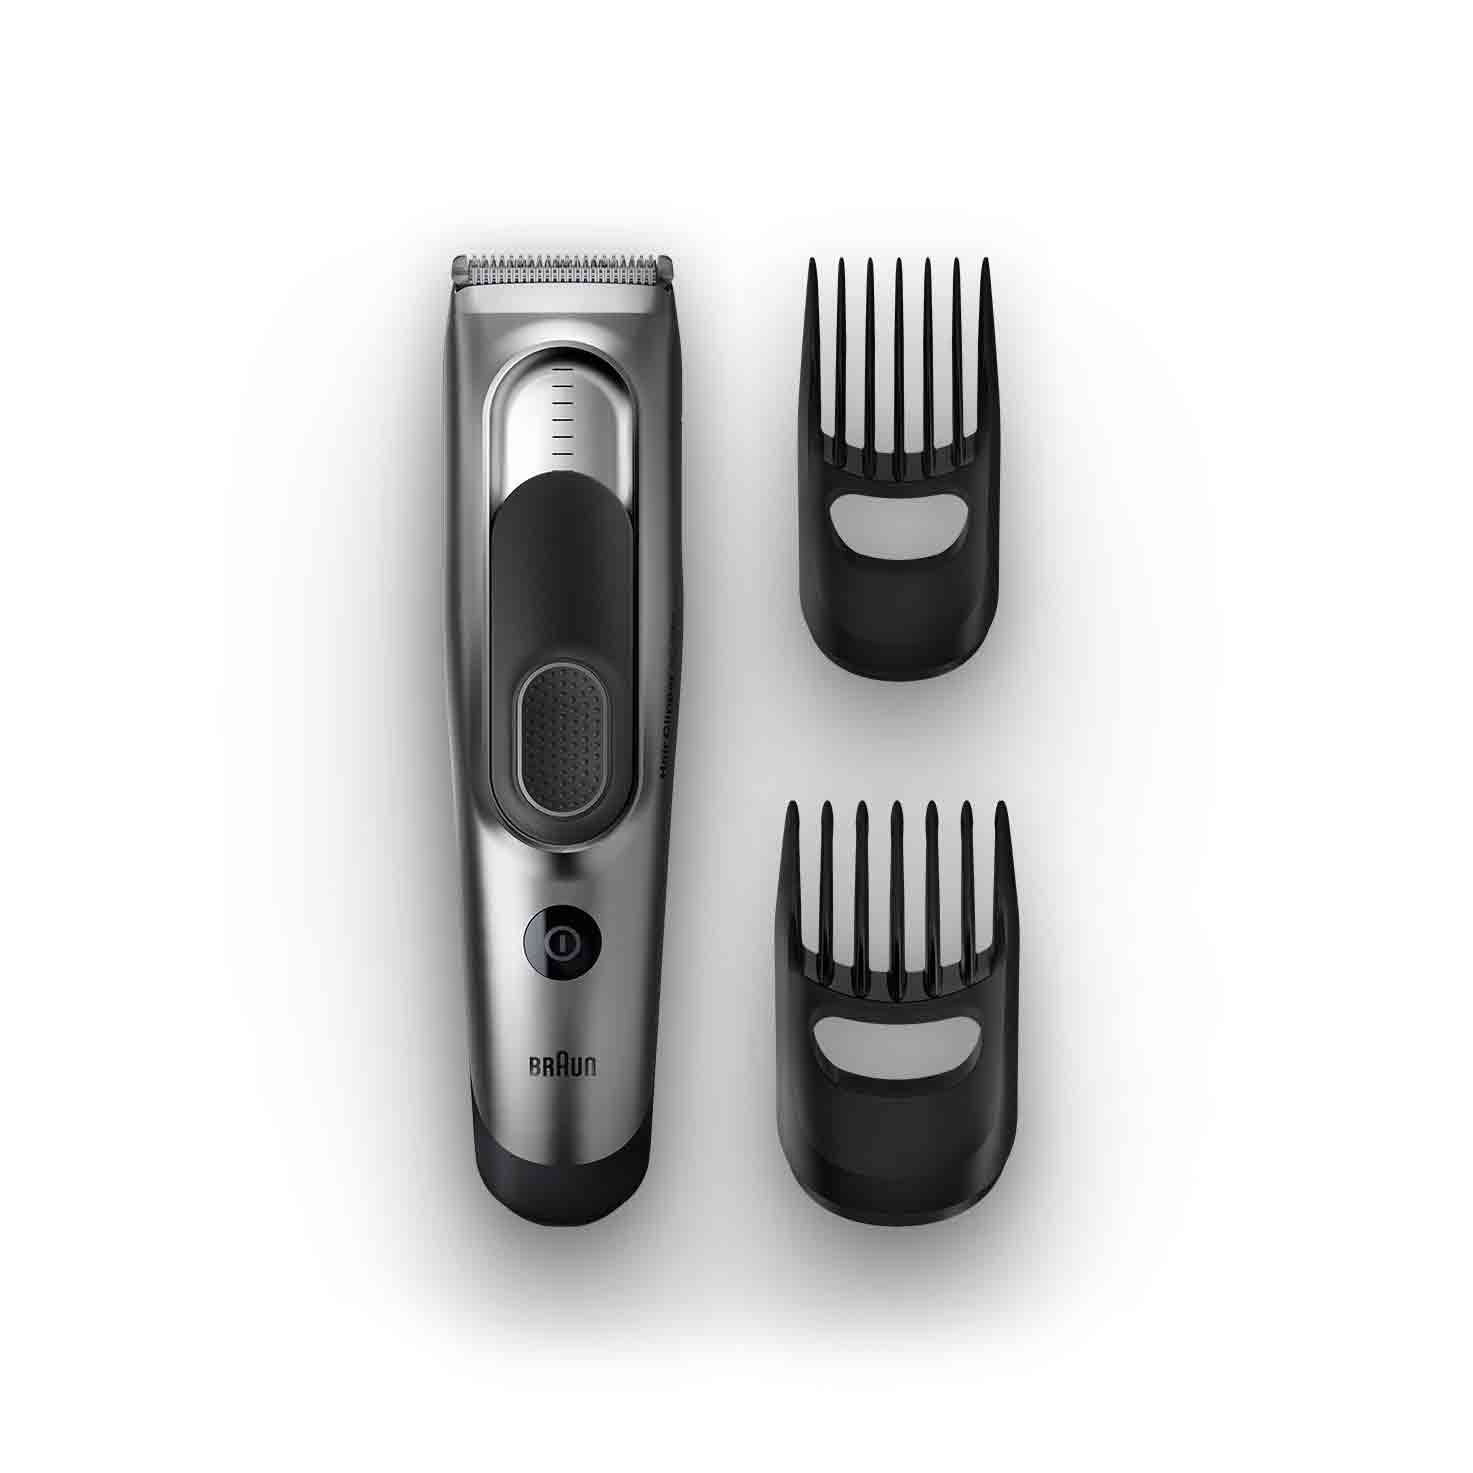 Braun Hair clipper HC5090 with 2 combs for 16 precise length settings, charging stand and pouch 4